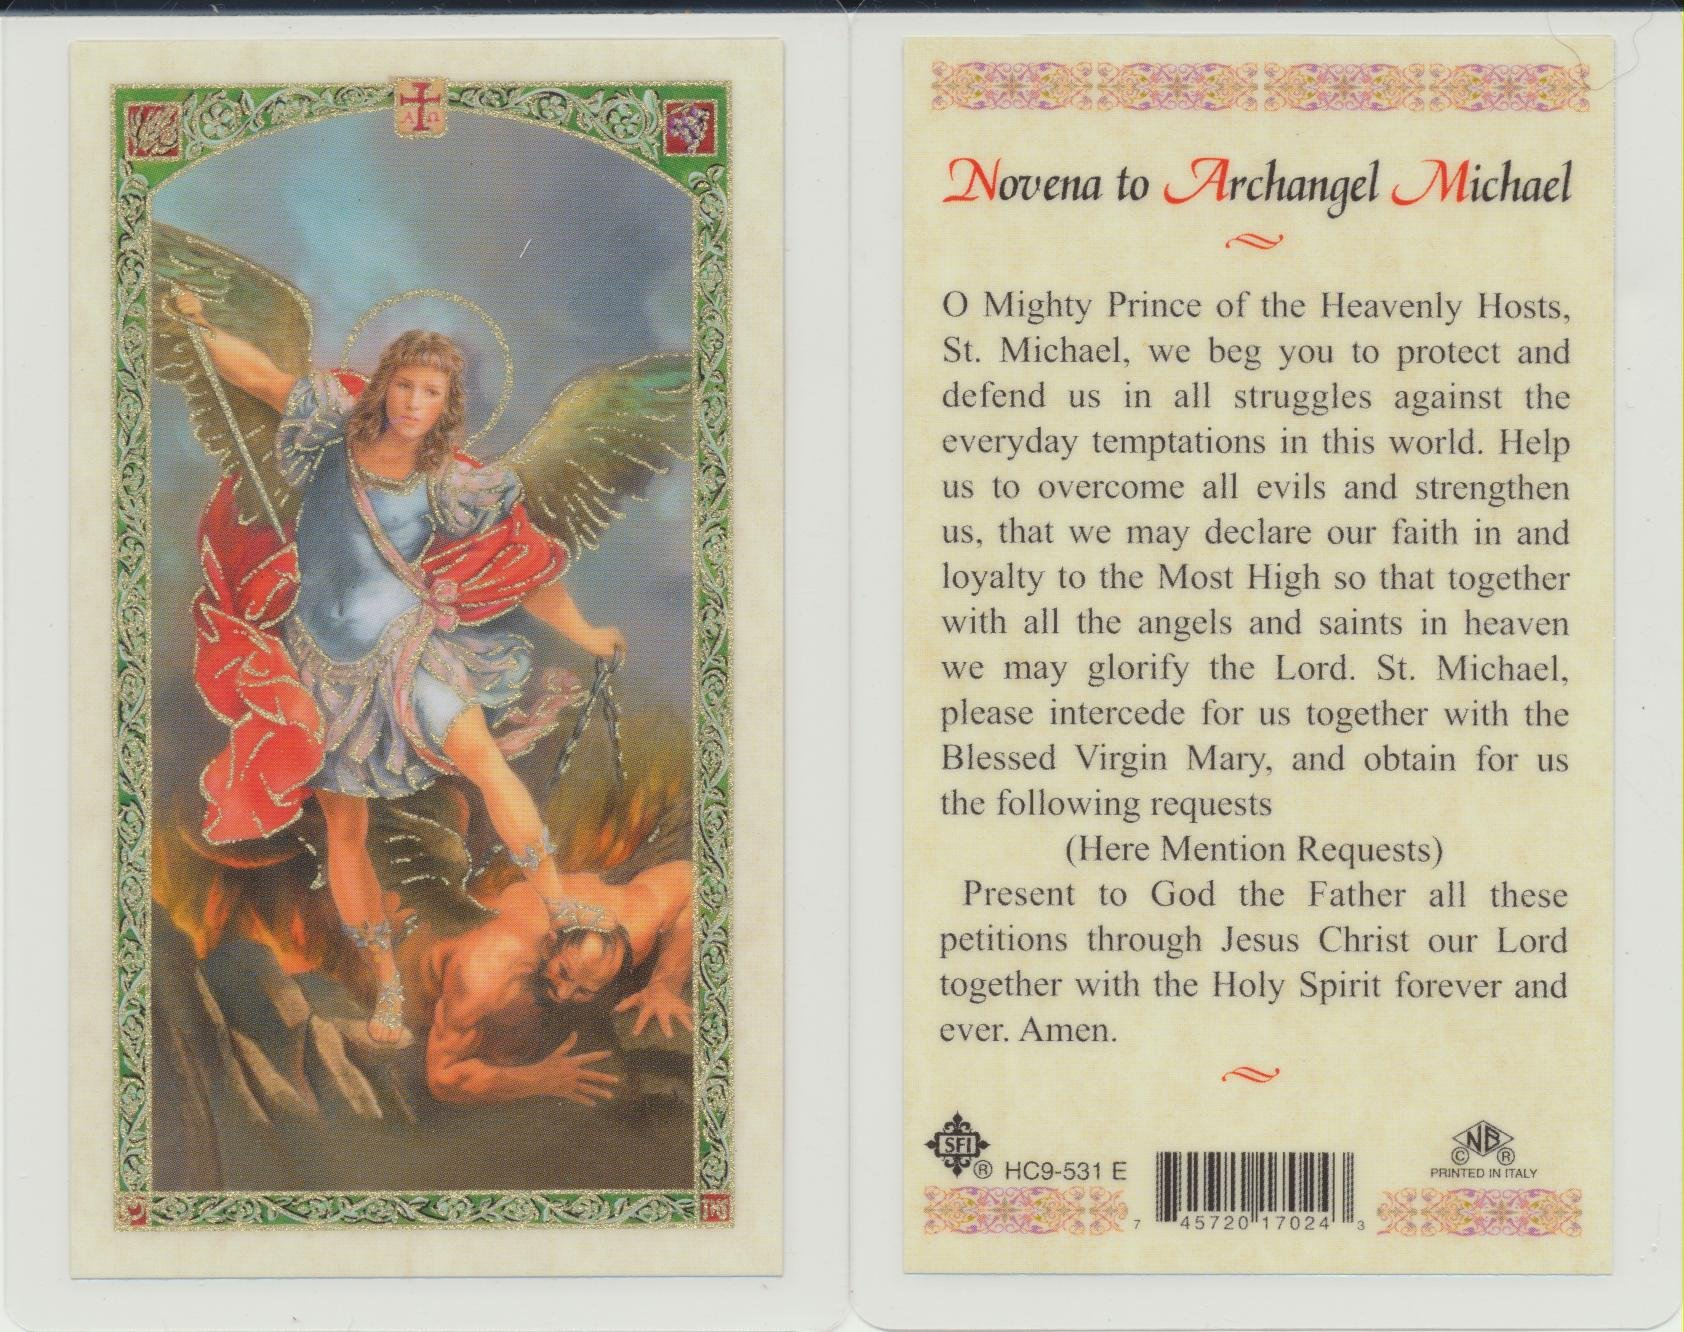 St Saint Michael the Archangel Holy Card Novena Patron of Police and Military